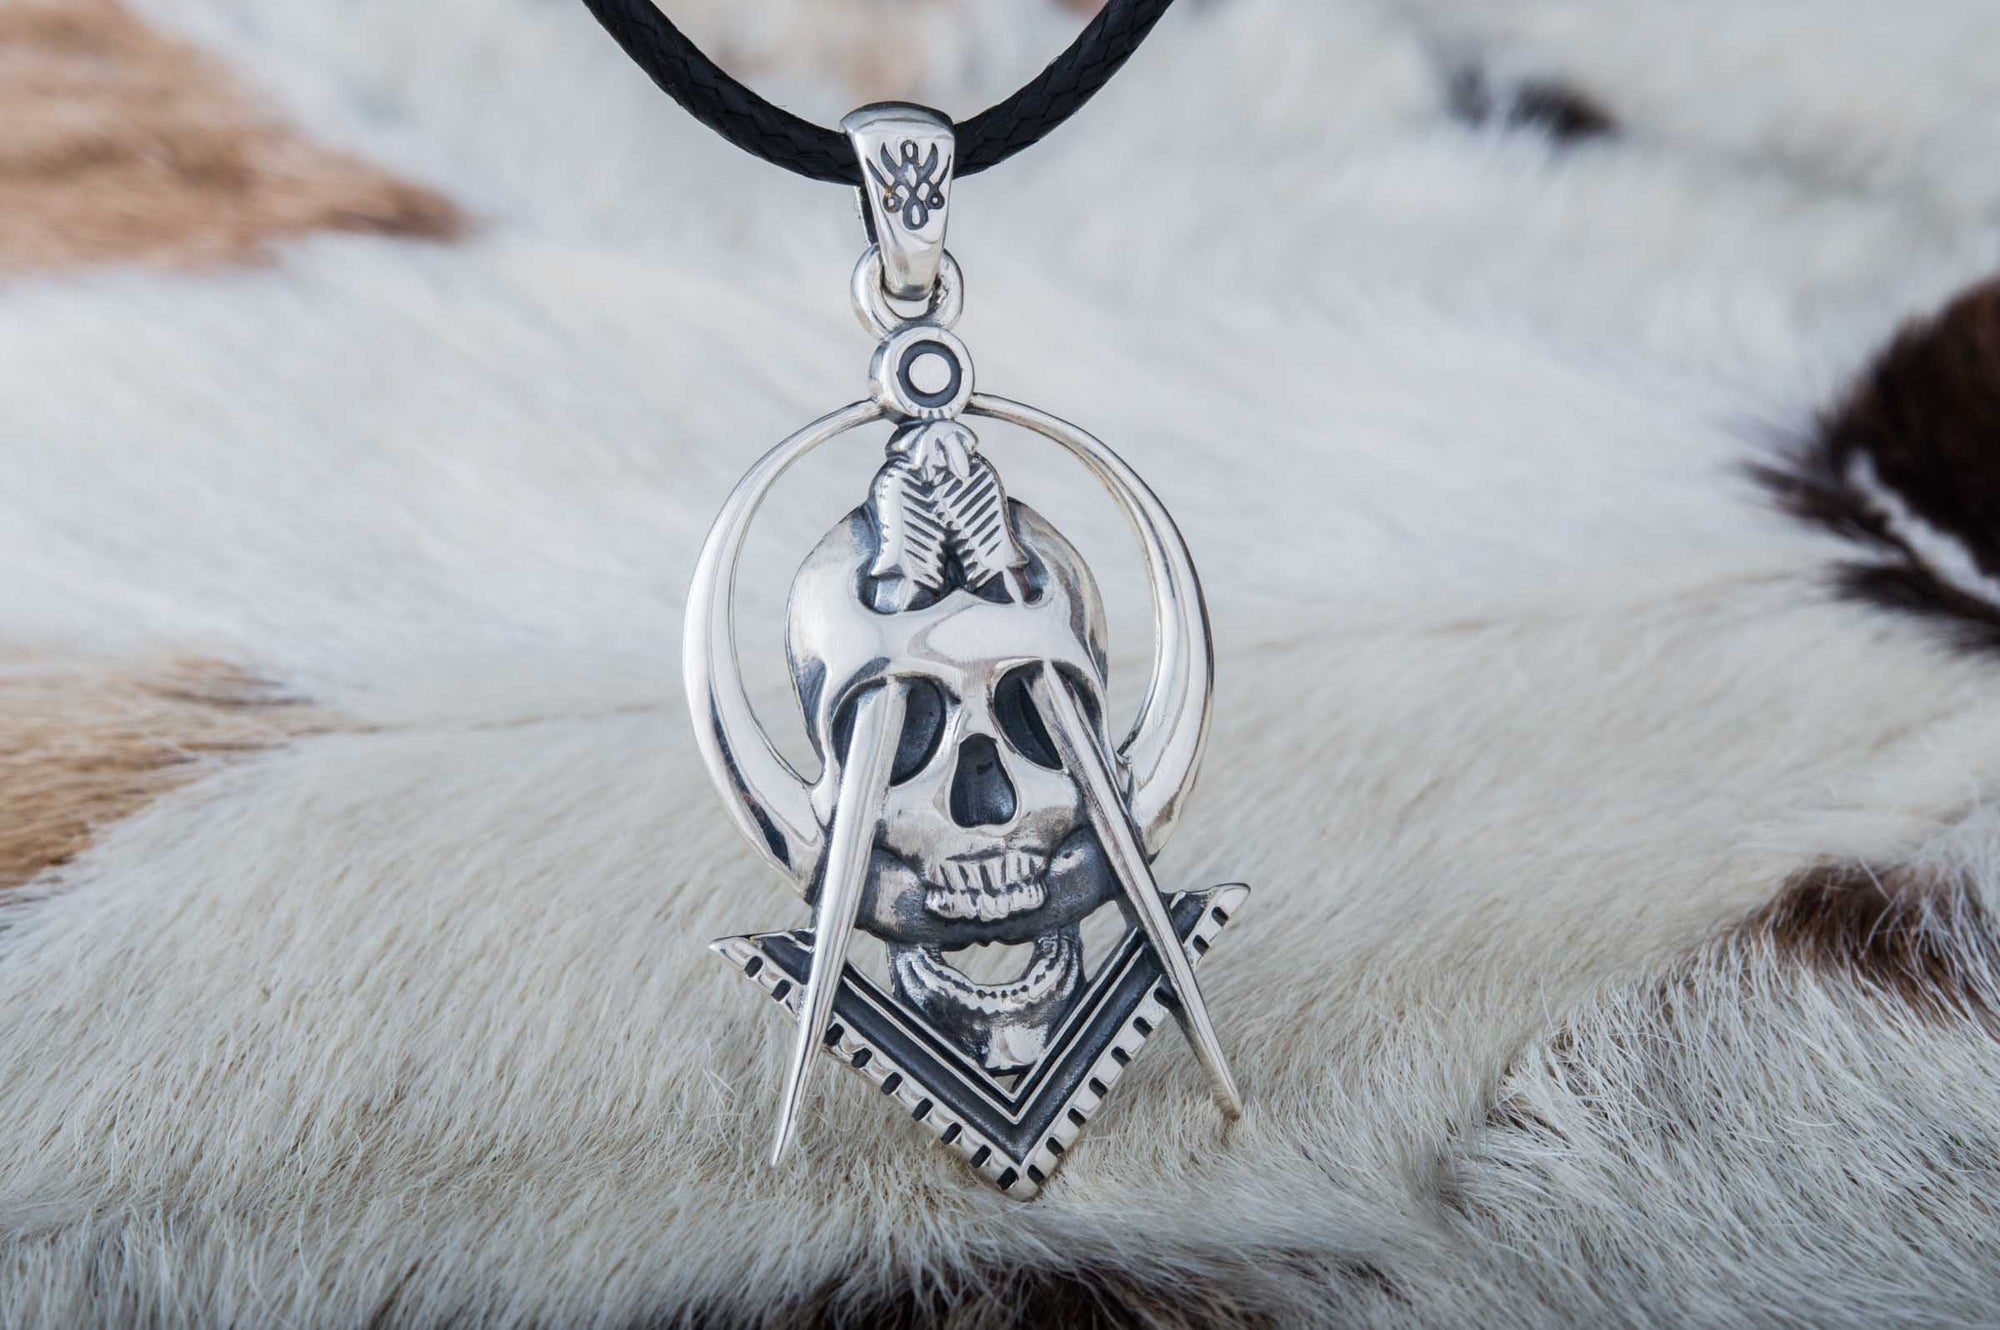 Pendants & Necklaces Masonic Compass and Skull Sterling Silver Handcrafted Pendant Ancient Treasures Ancientreasures Viking Odin Thor Mjolnir Celtic Ancient Egypt Norse Norse Mythology